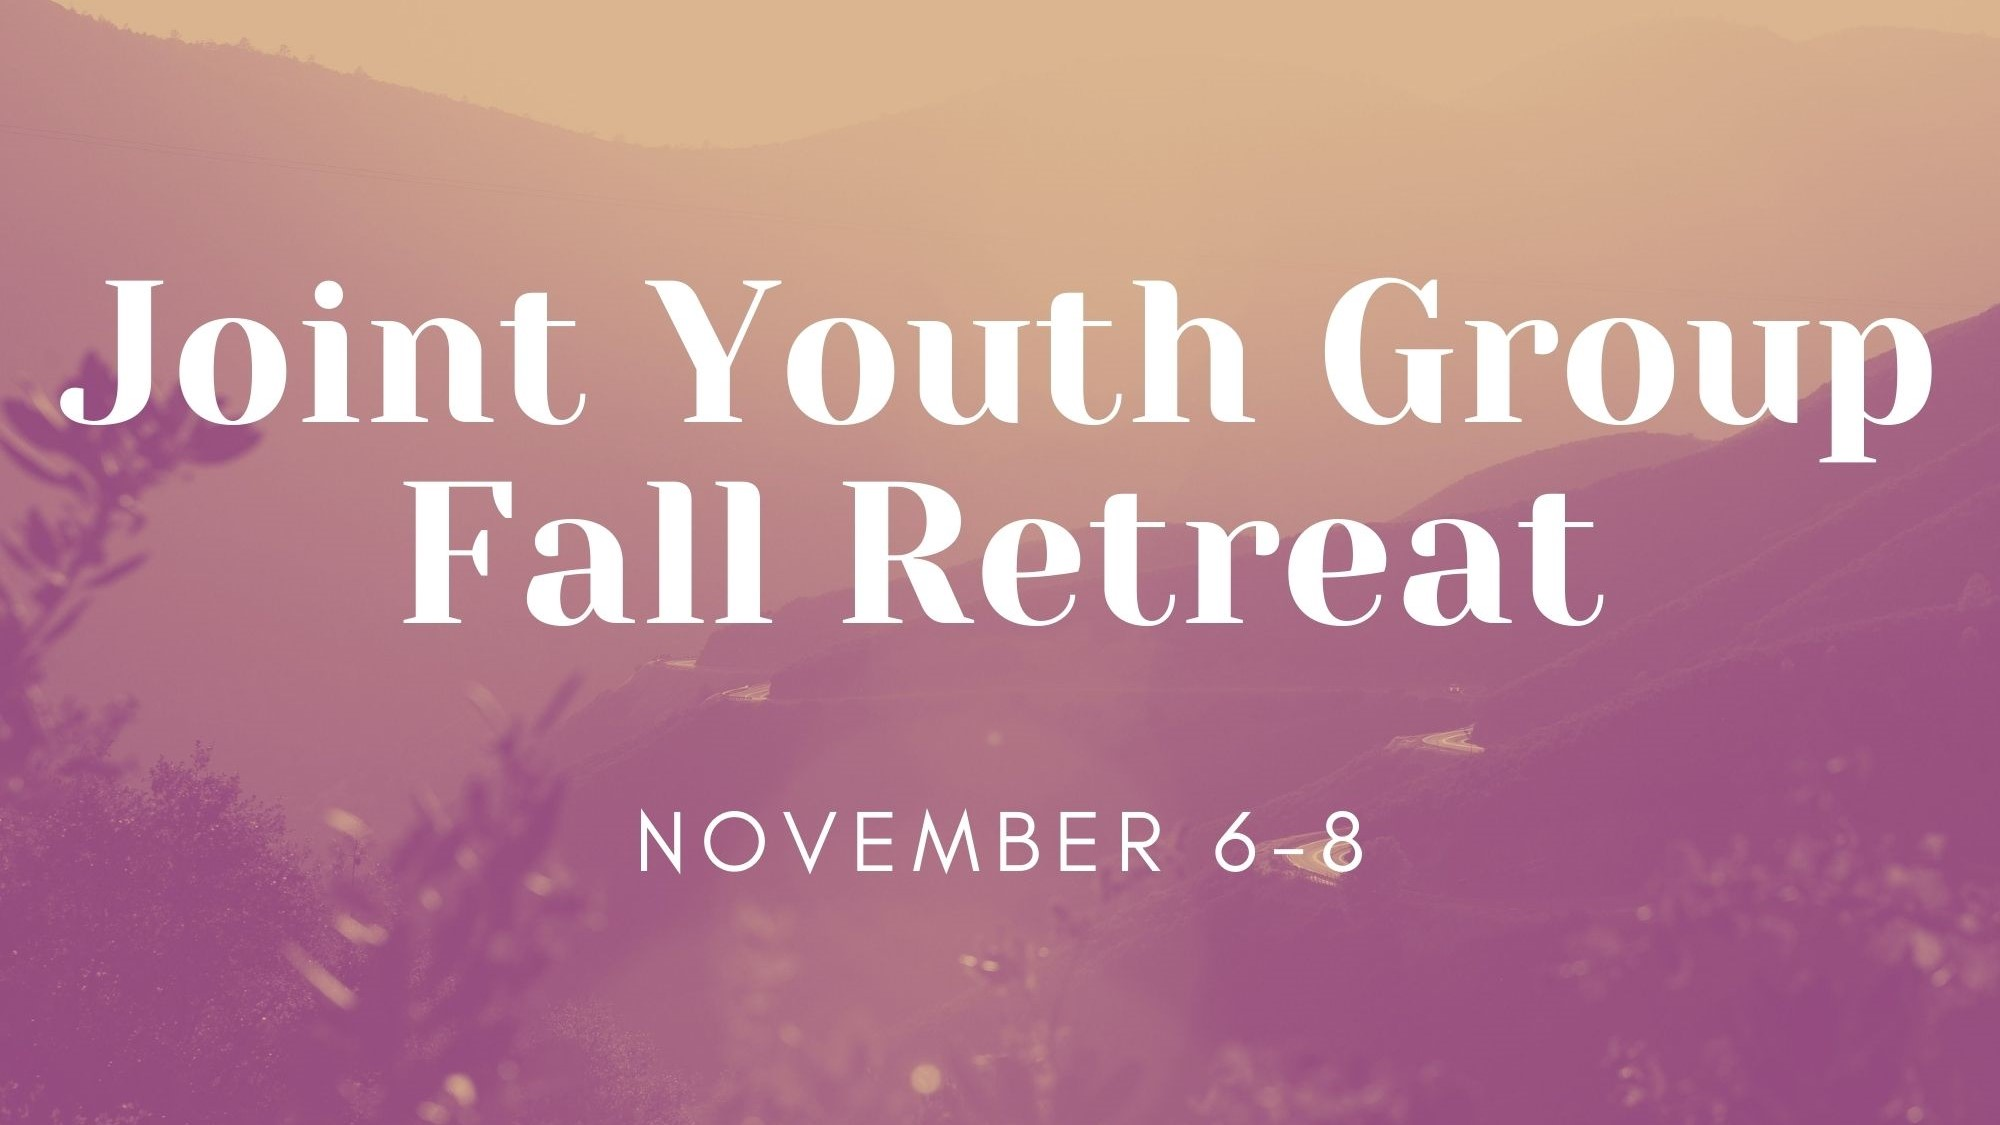 Joint Youth Group Fall Retreat 2020